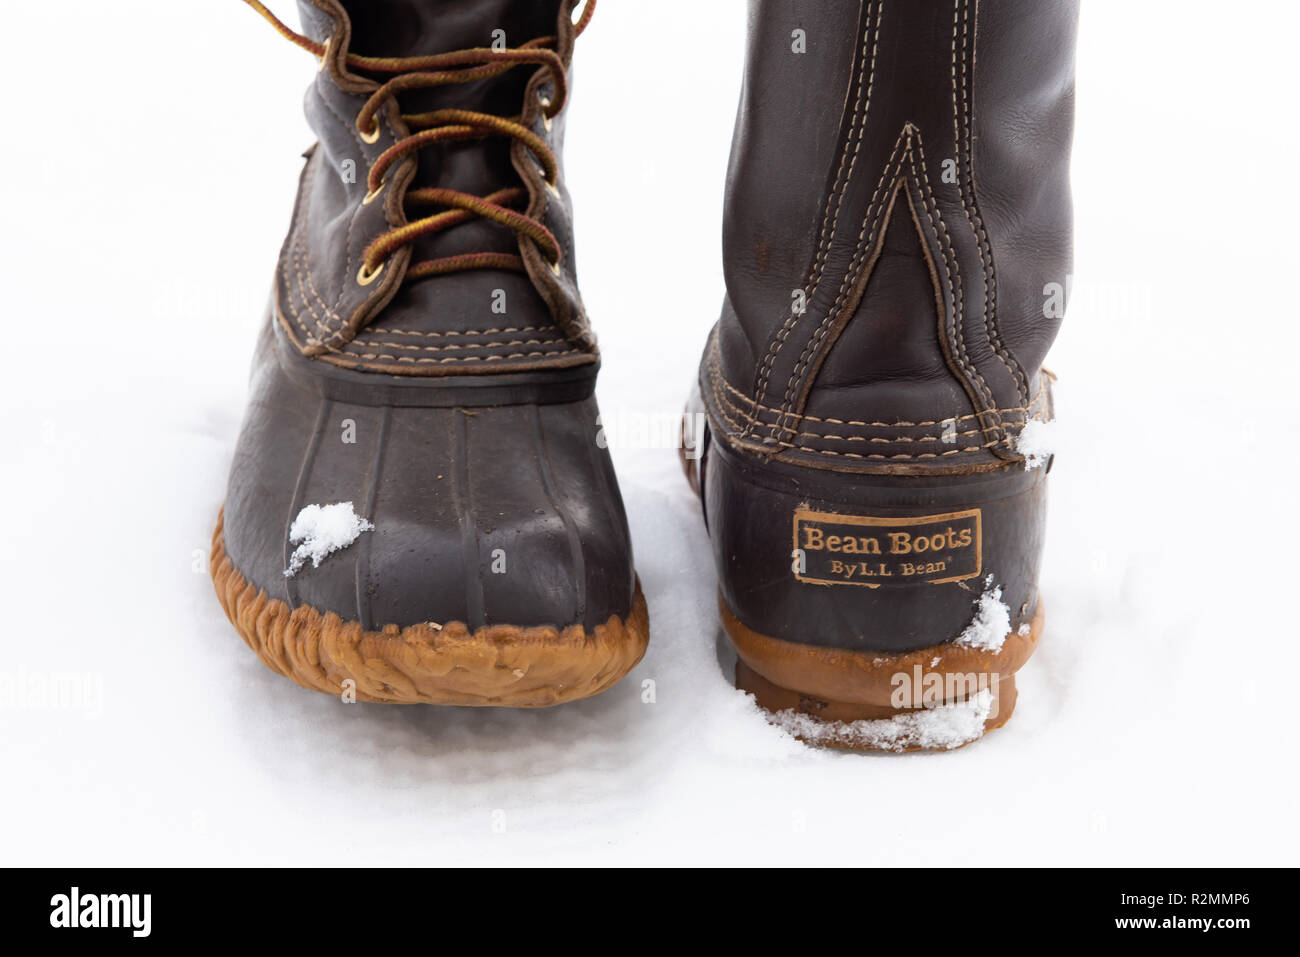 A pair of worn LL Bean boots in the snow, showing the leather and rubber construction and the distinctive chain link tread design and waterproof sole. - Stock Image